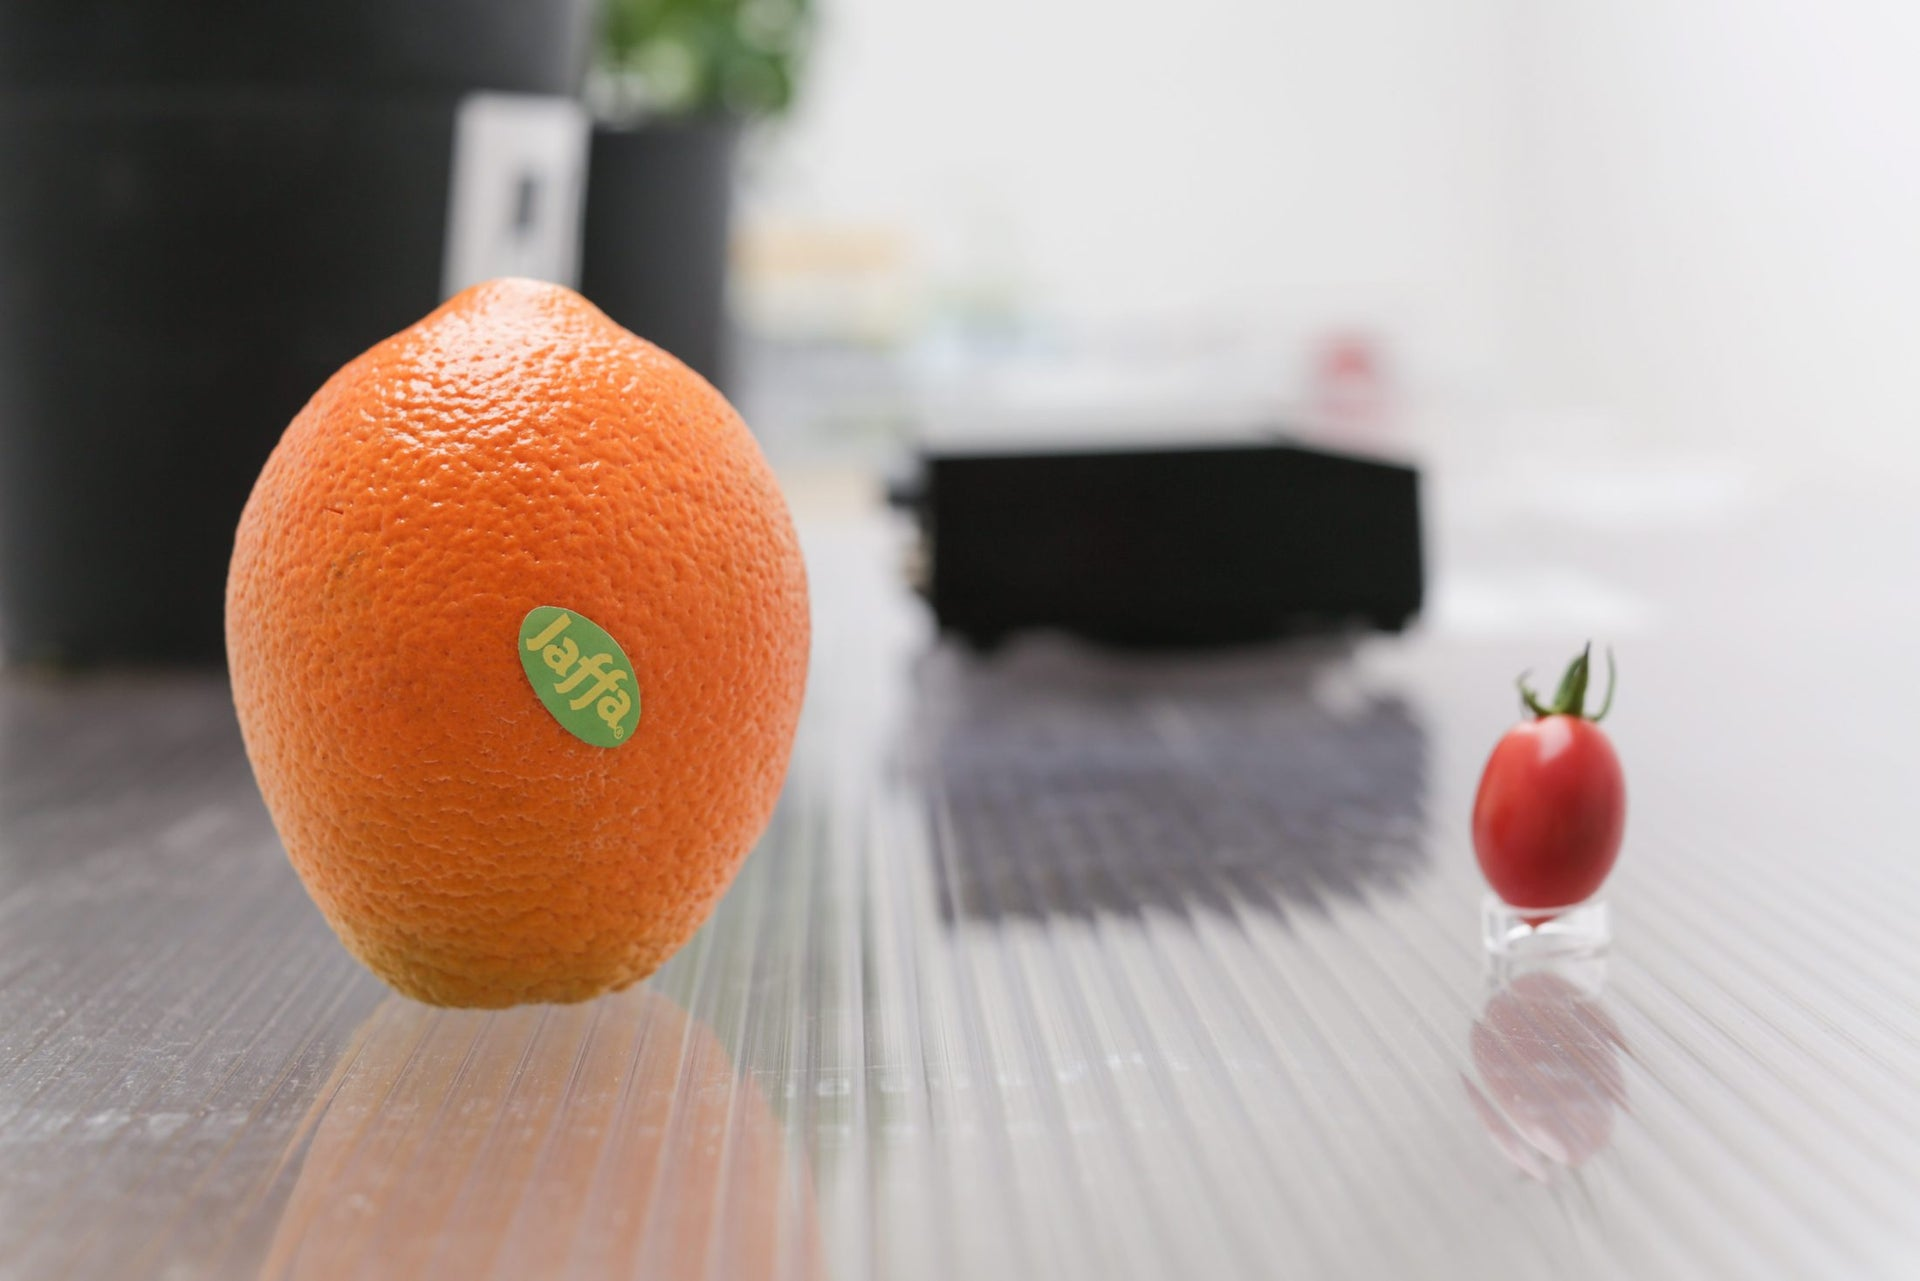 The Jaffa orange and the cherry tomato. Israeli inventions? Or just something designed in Israel?